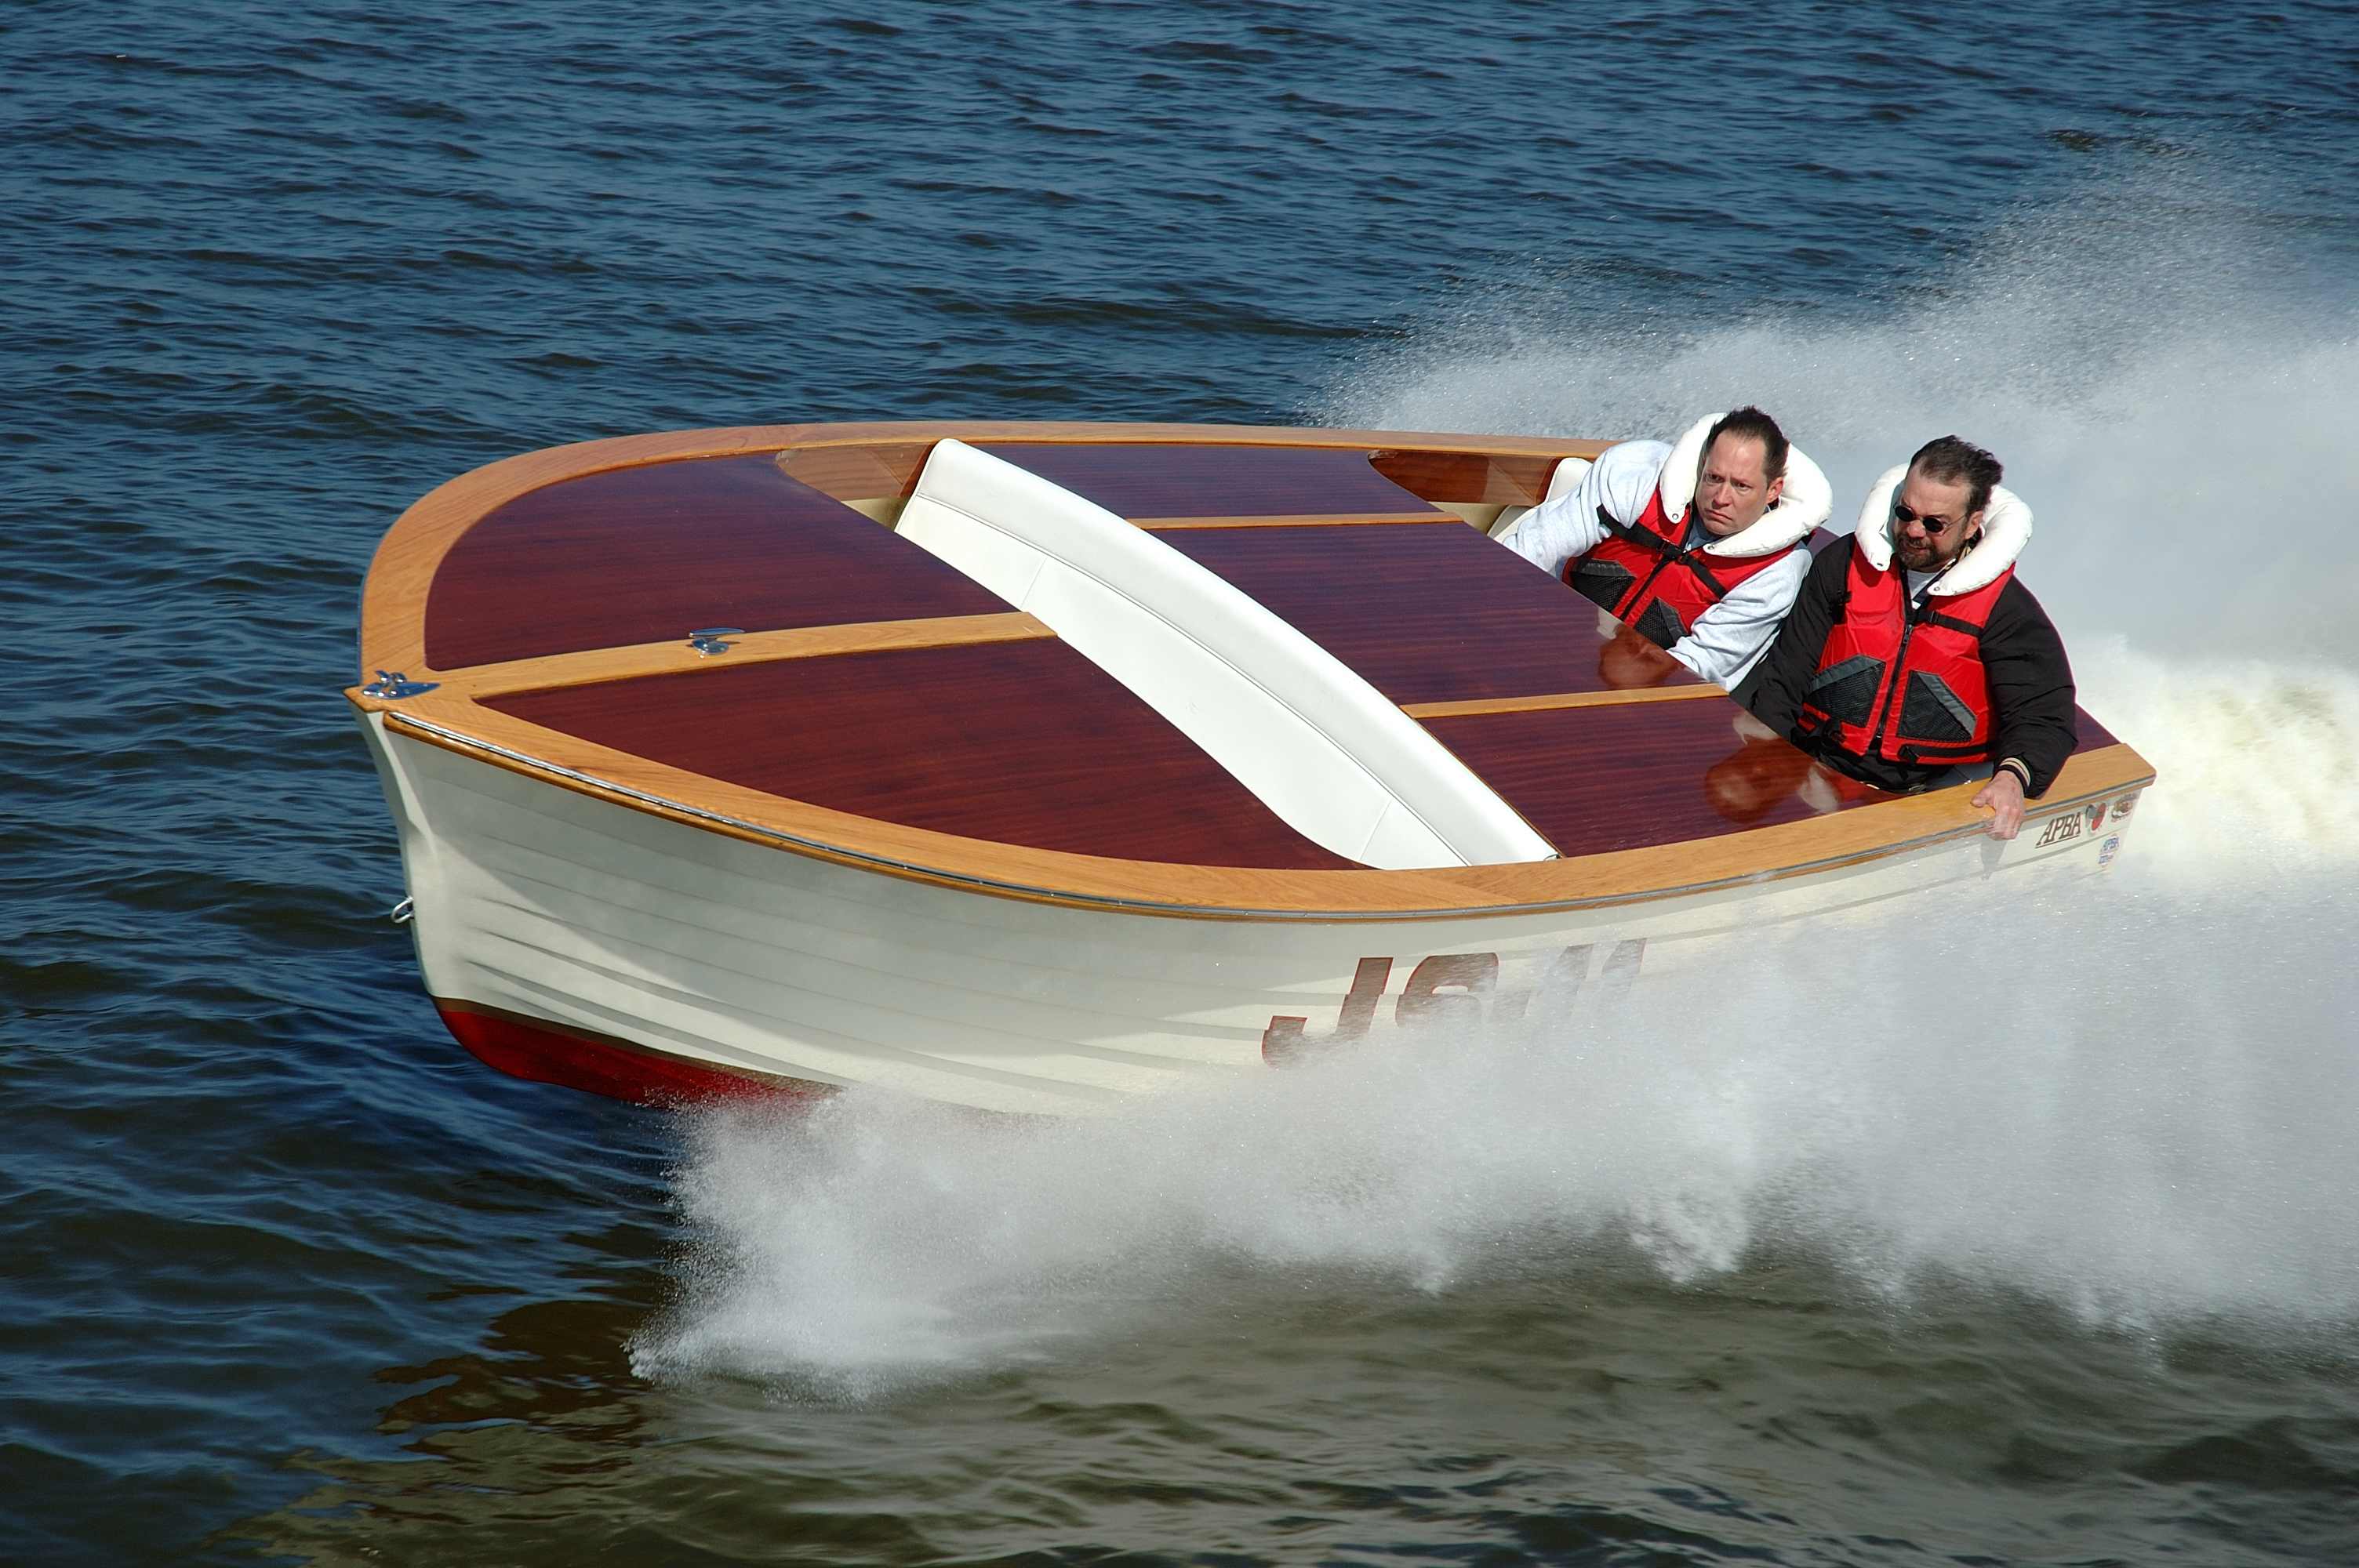 Jim Hassfeld's 1973 17-foot Gillman Jersey Speed Skiff